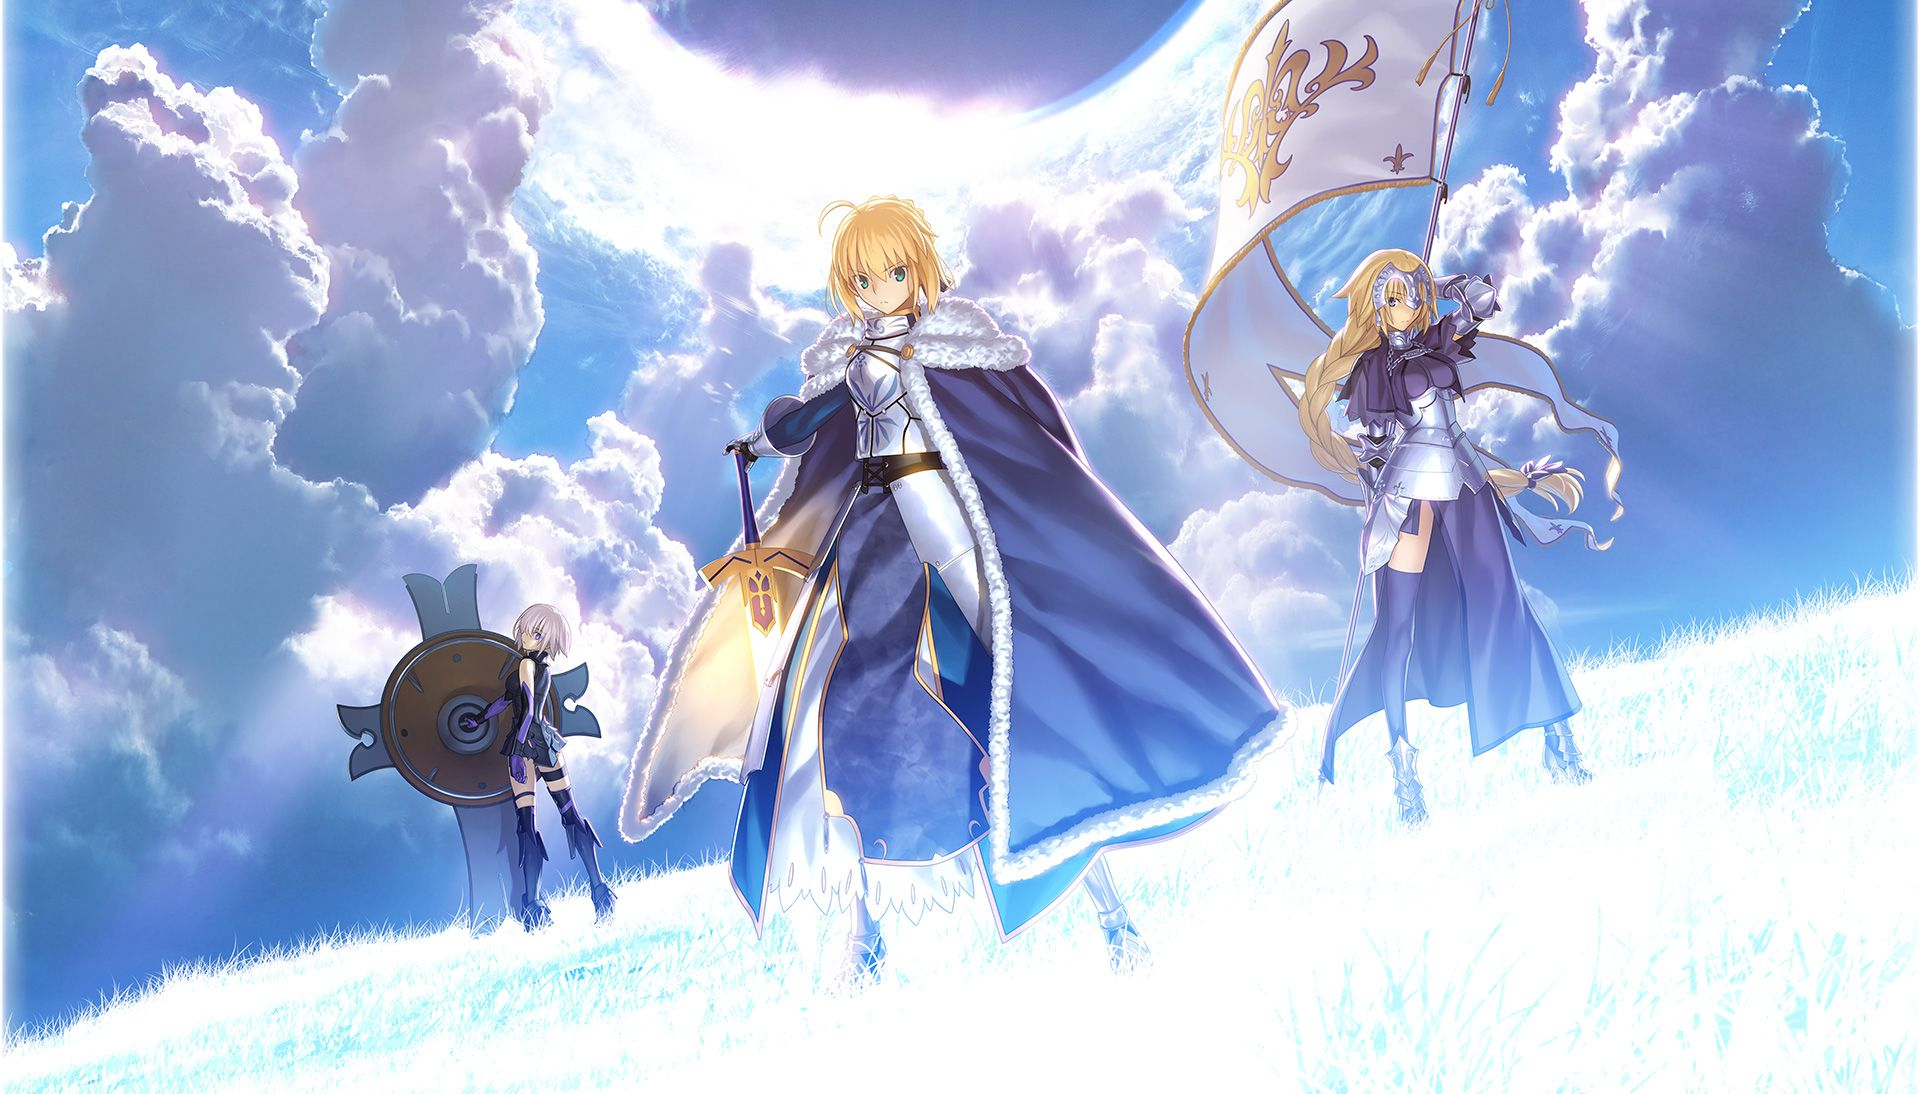 Remake history this summer with the next Fate game screenshot